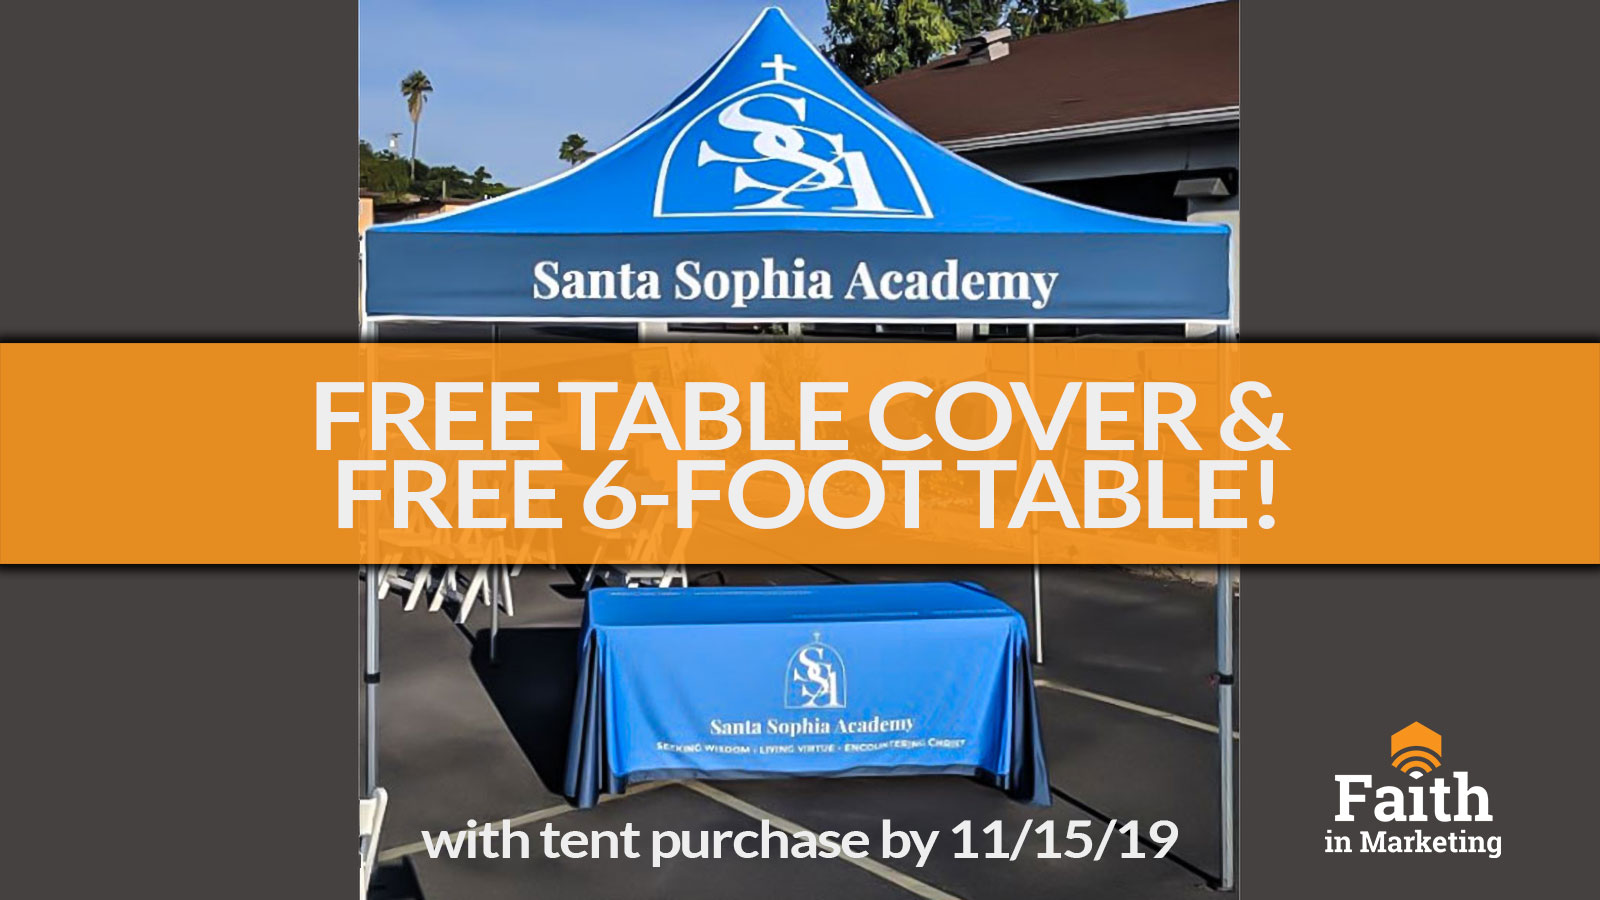 Free Table Cover & Free 6-ft Table